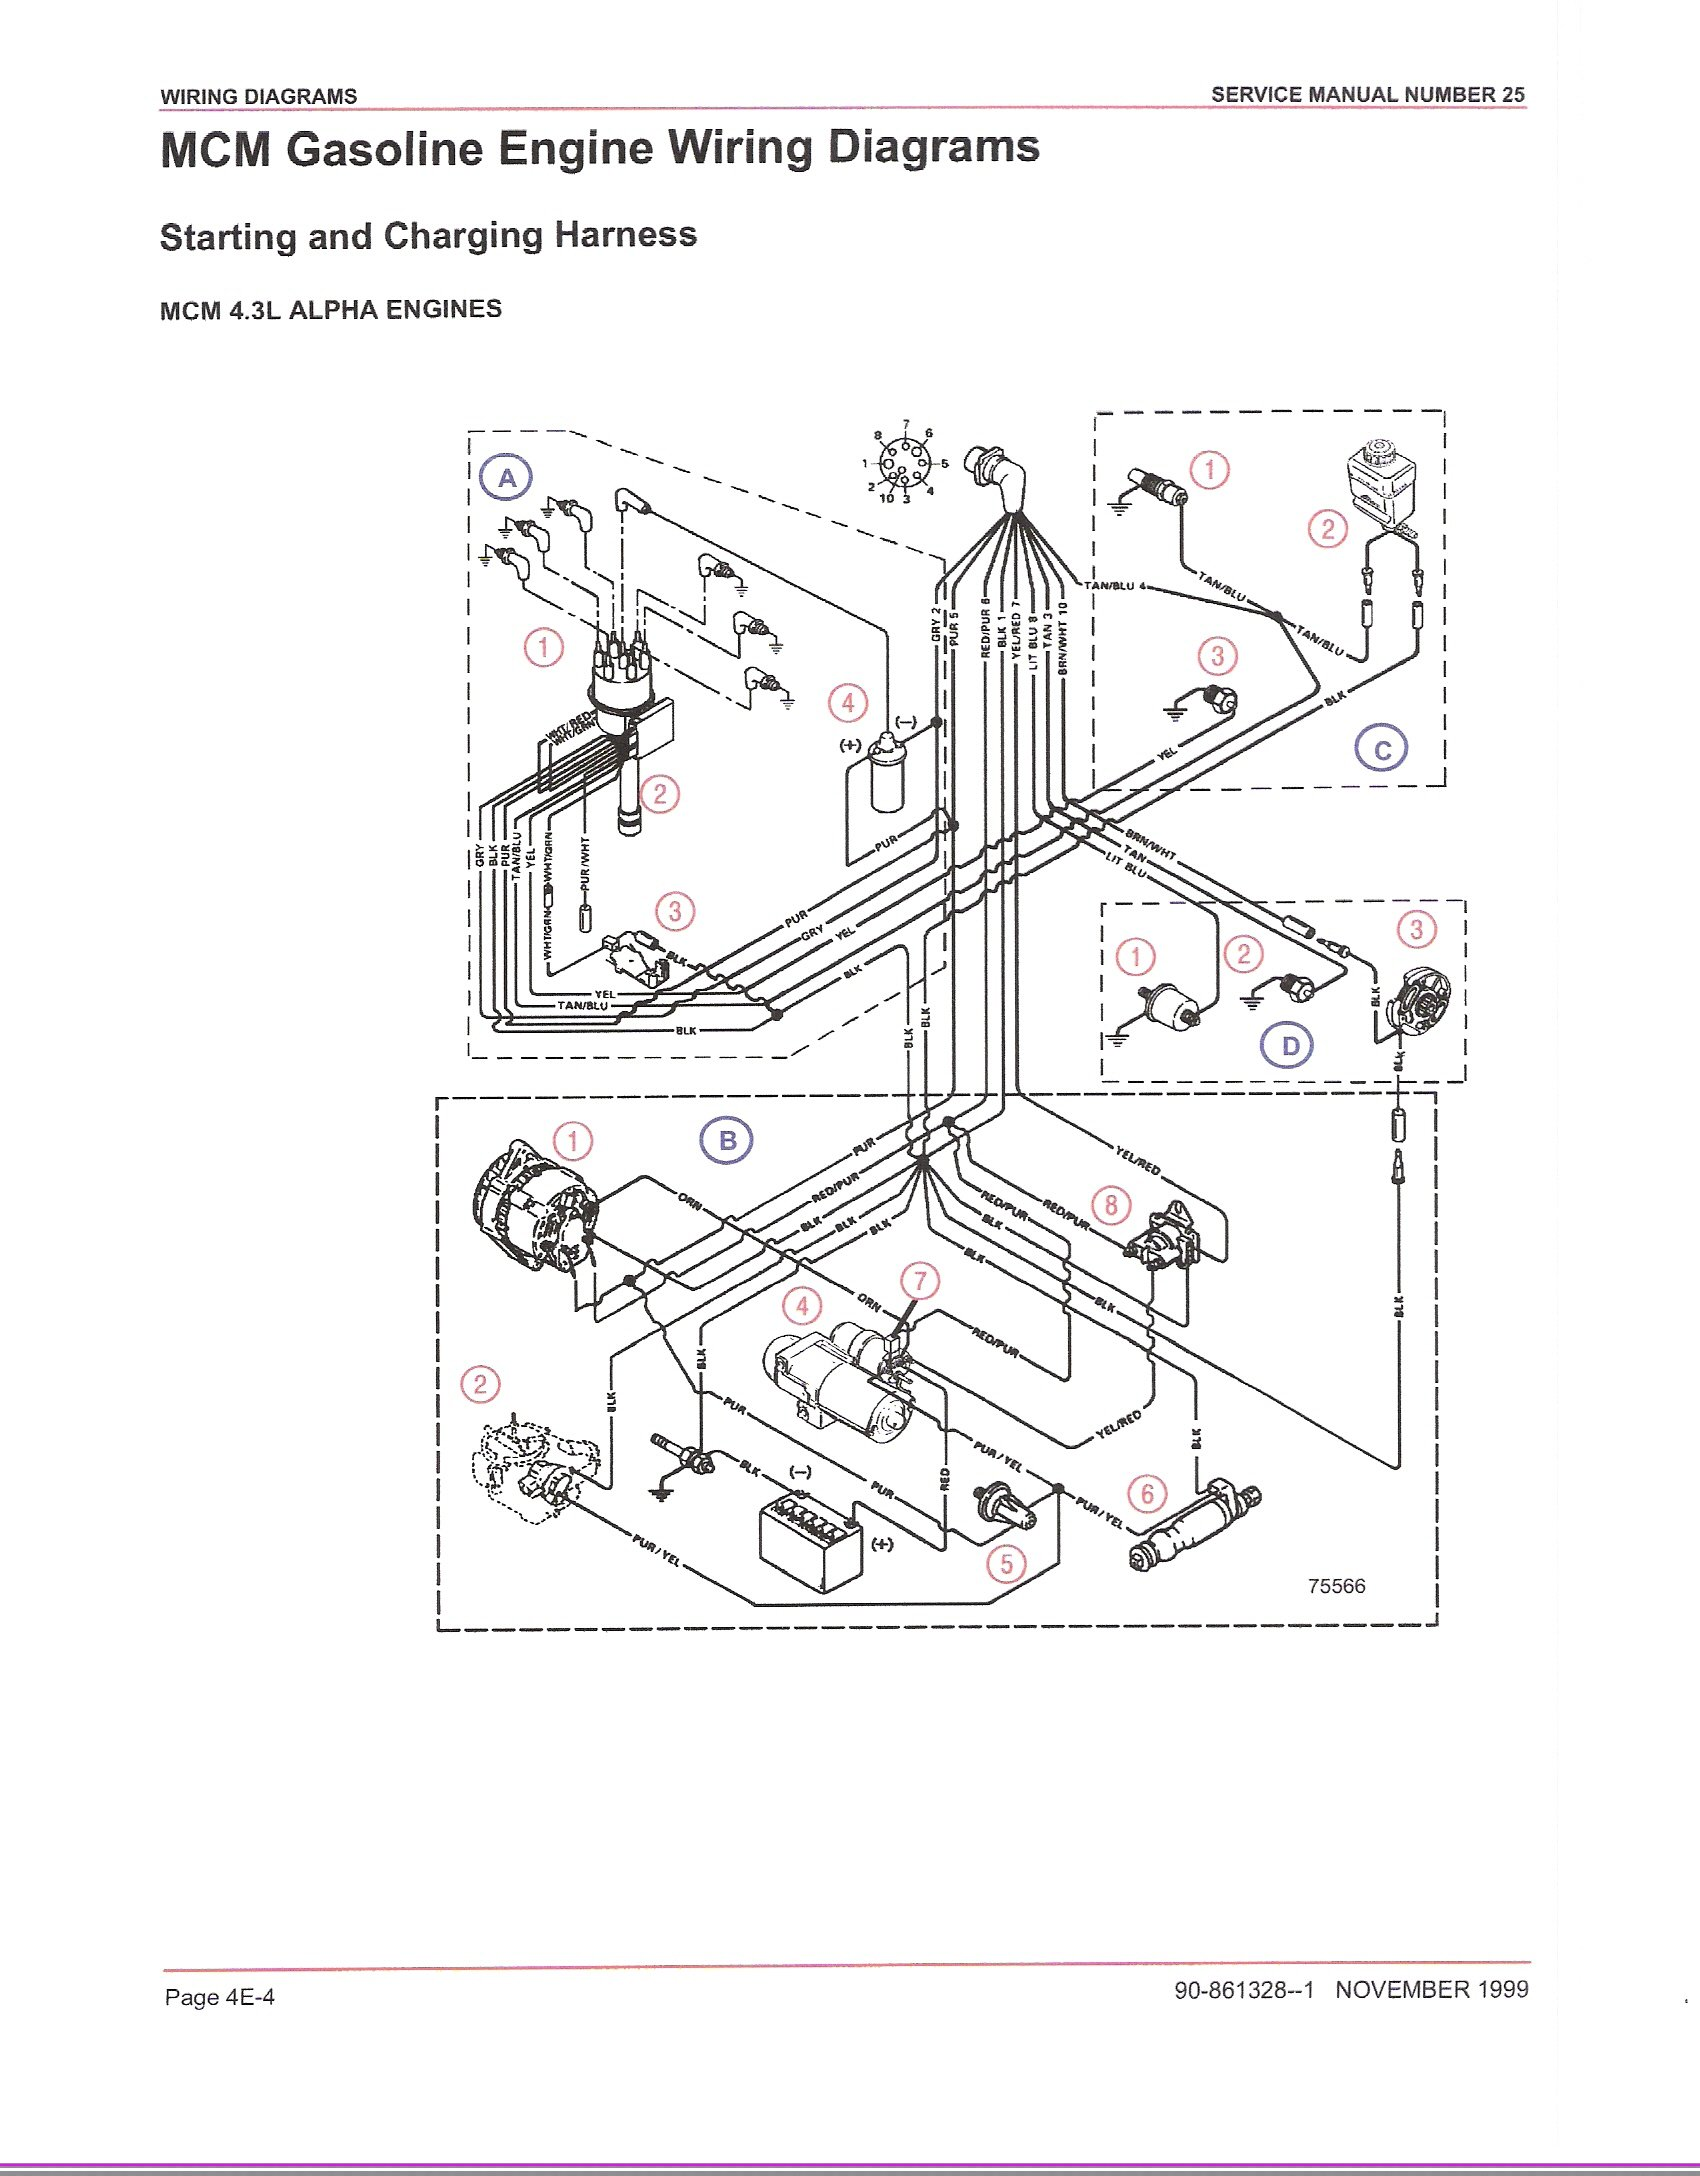 Omc 4 3 Wiring Diagram - Daily Electronical Wiring Diagram Omc Ignition Wiring Diagram on